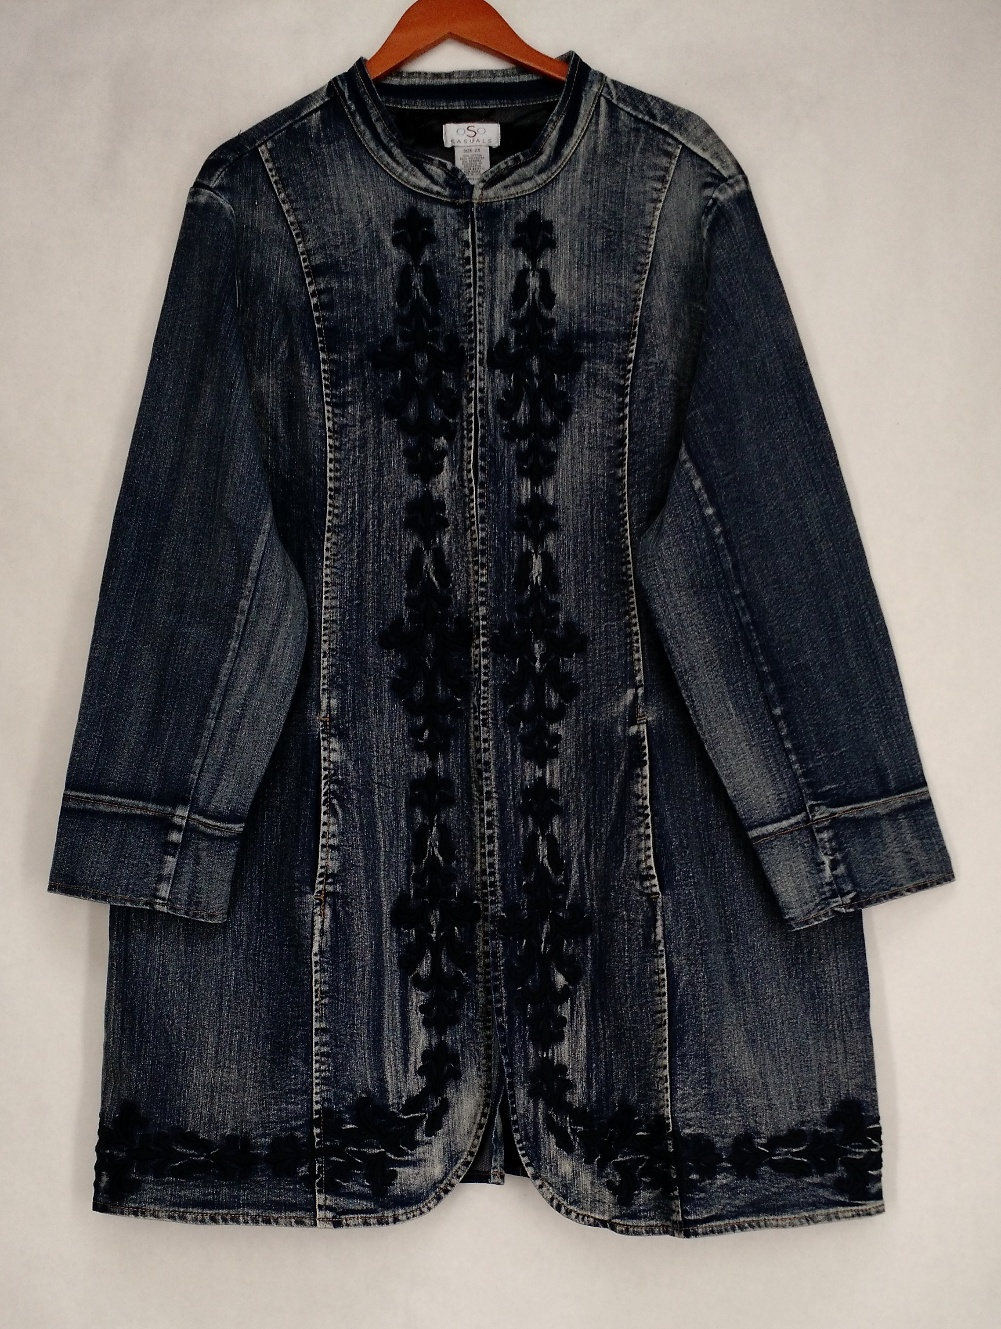 Oso casuals plus size embroidered long denim jacket blue